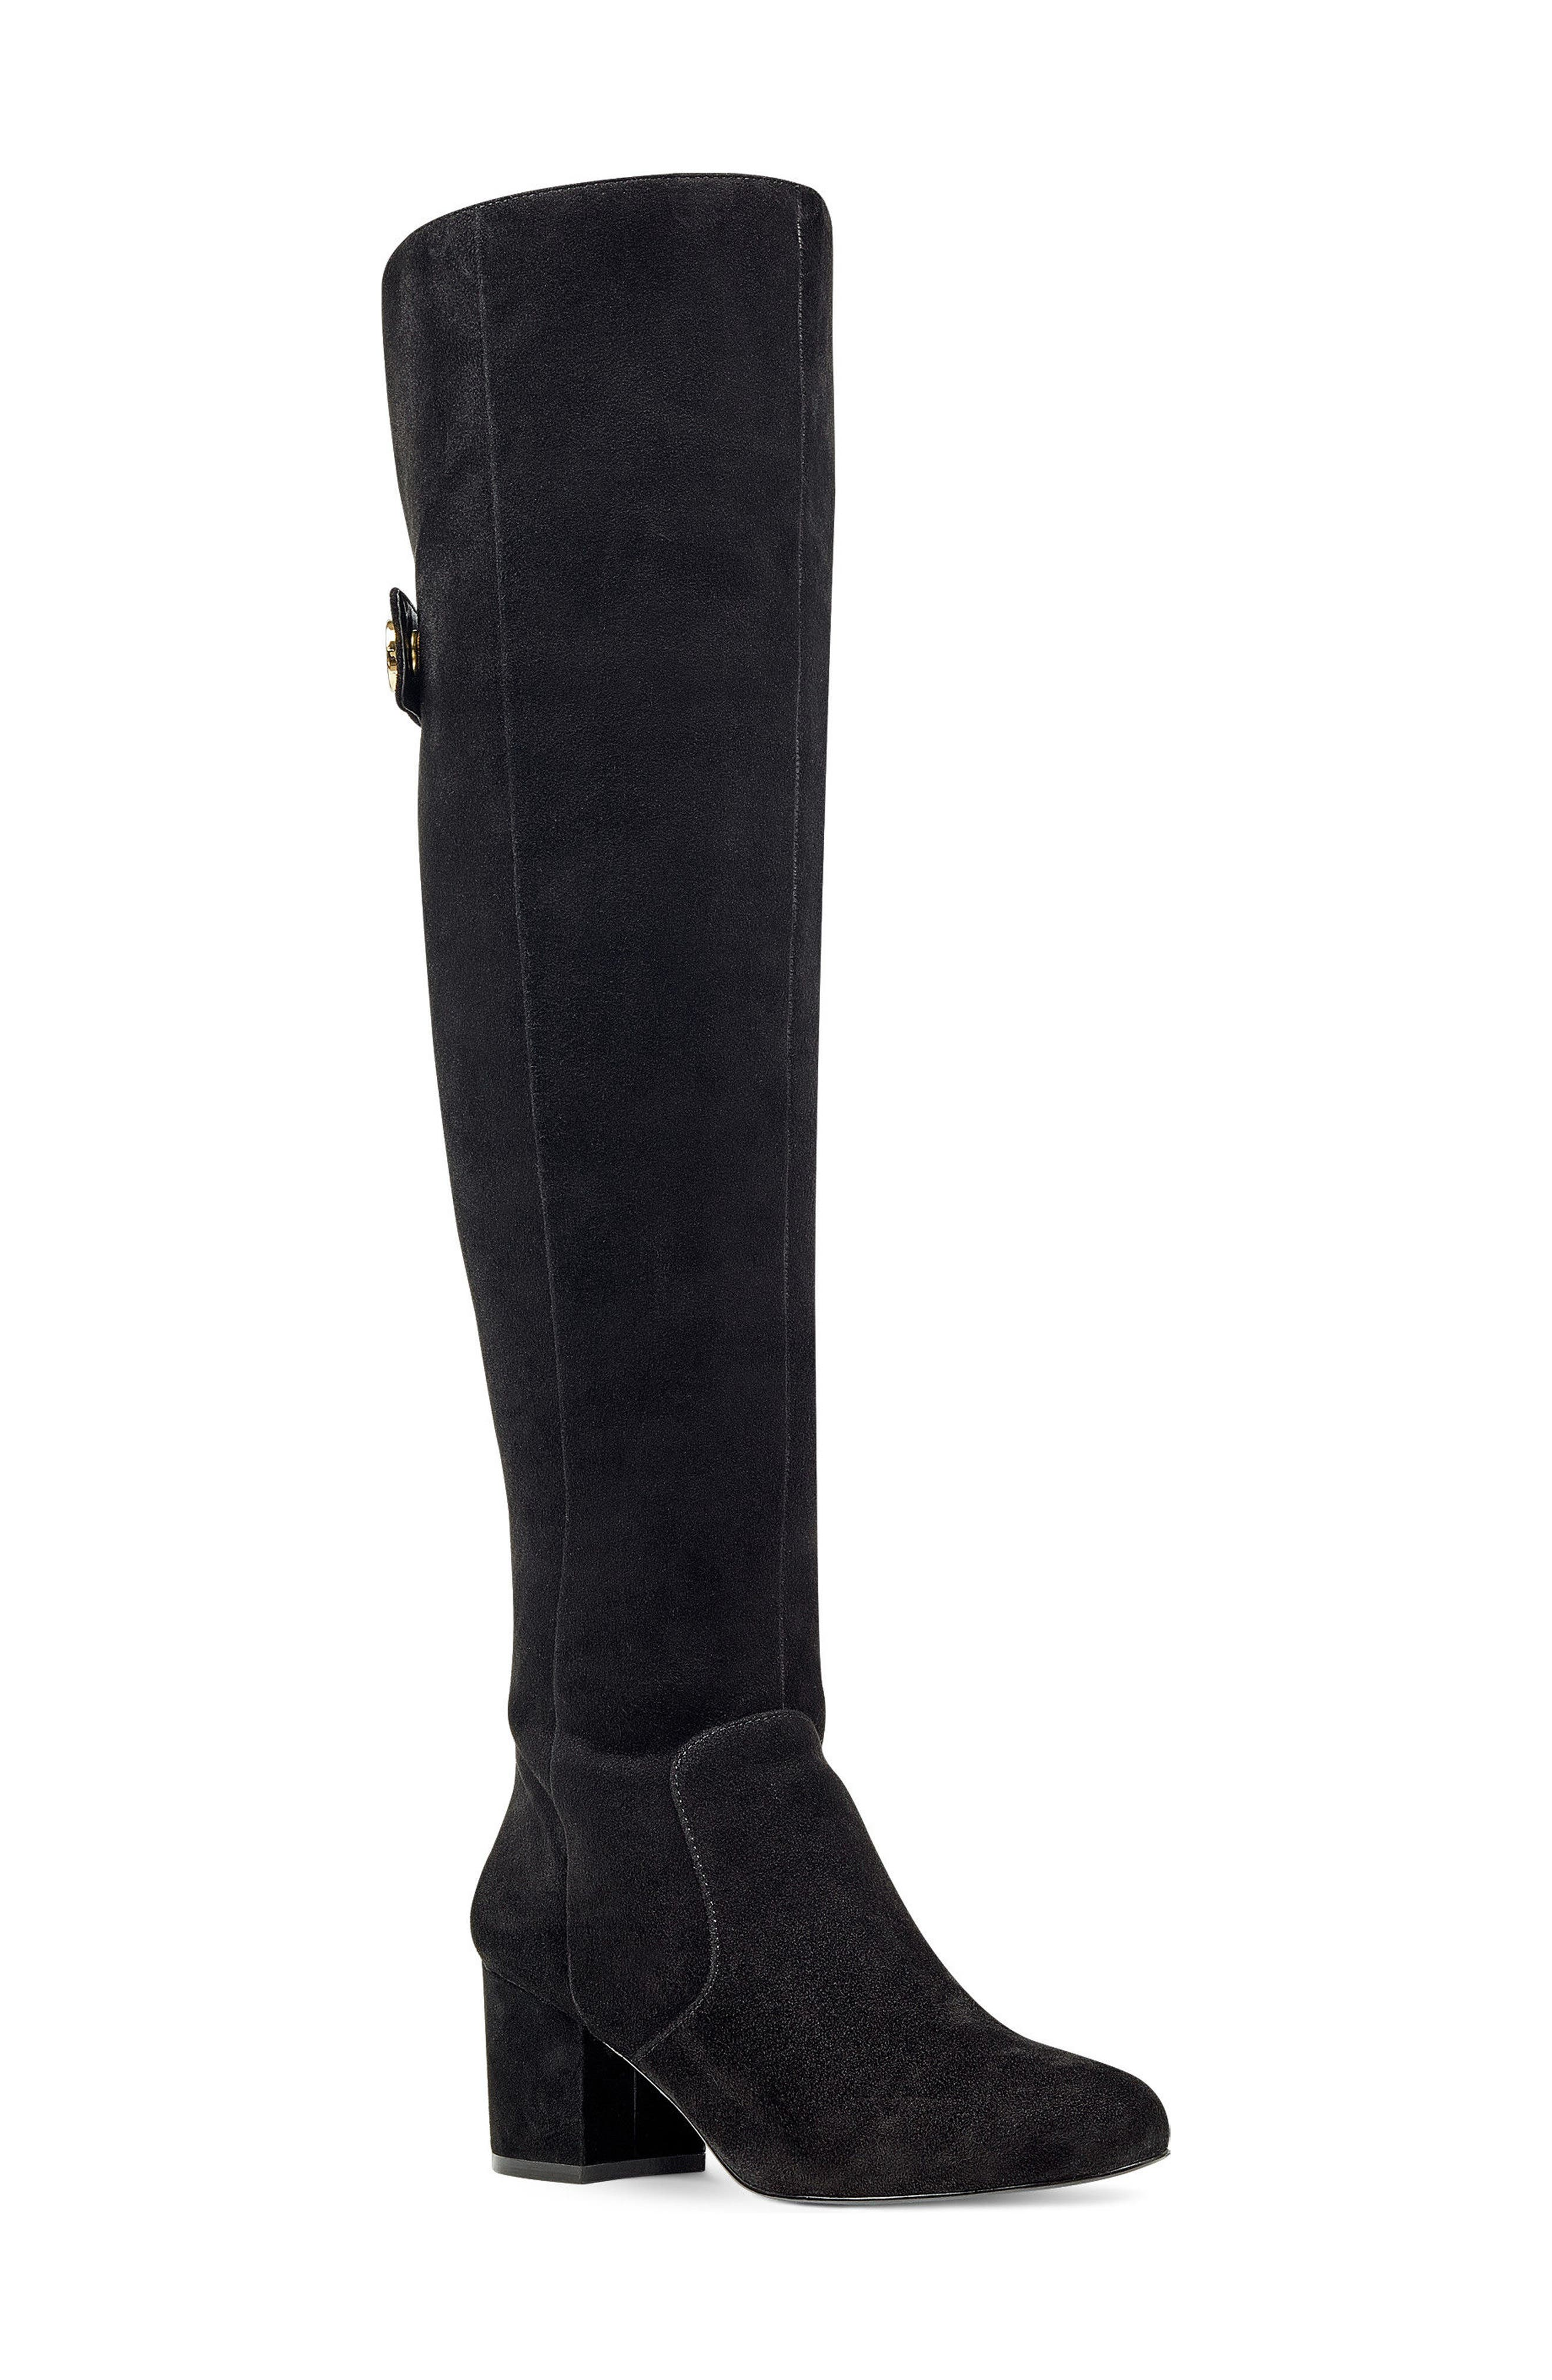 Queddy Over the Knee Boot,                             Main thumbnail 1, color,